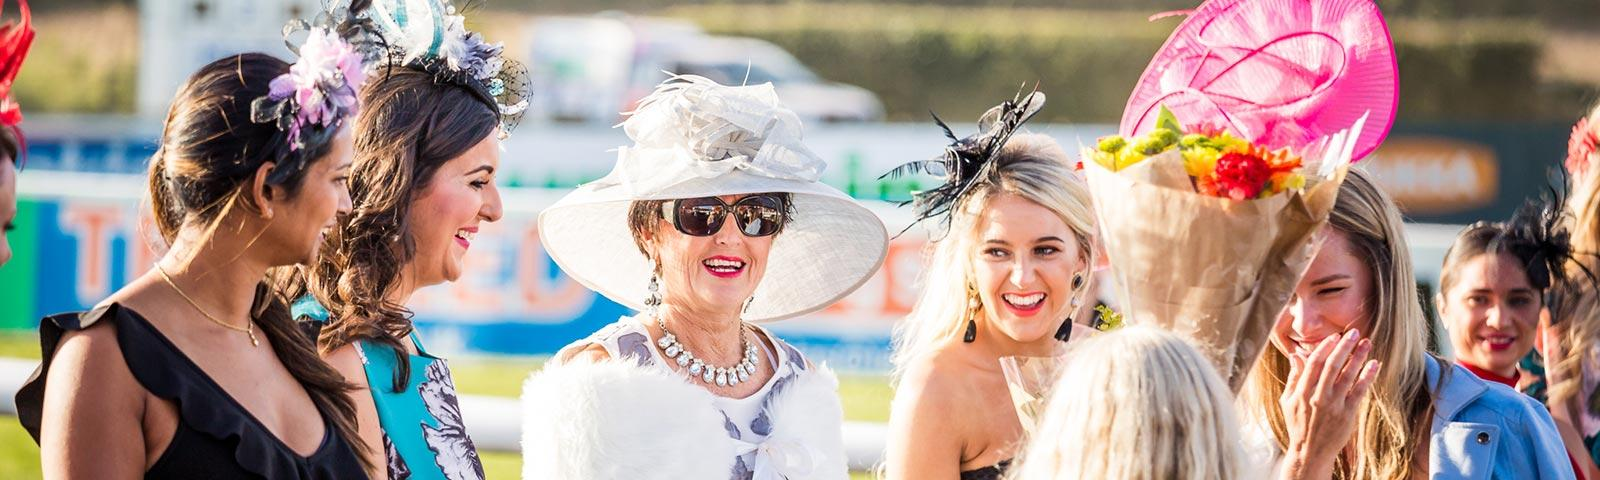 Group of dressed up ladies at Sedgefield Racecourse.